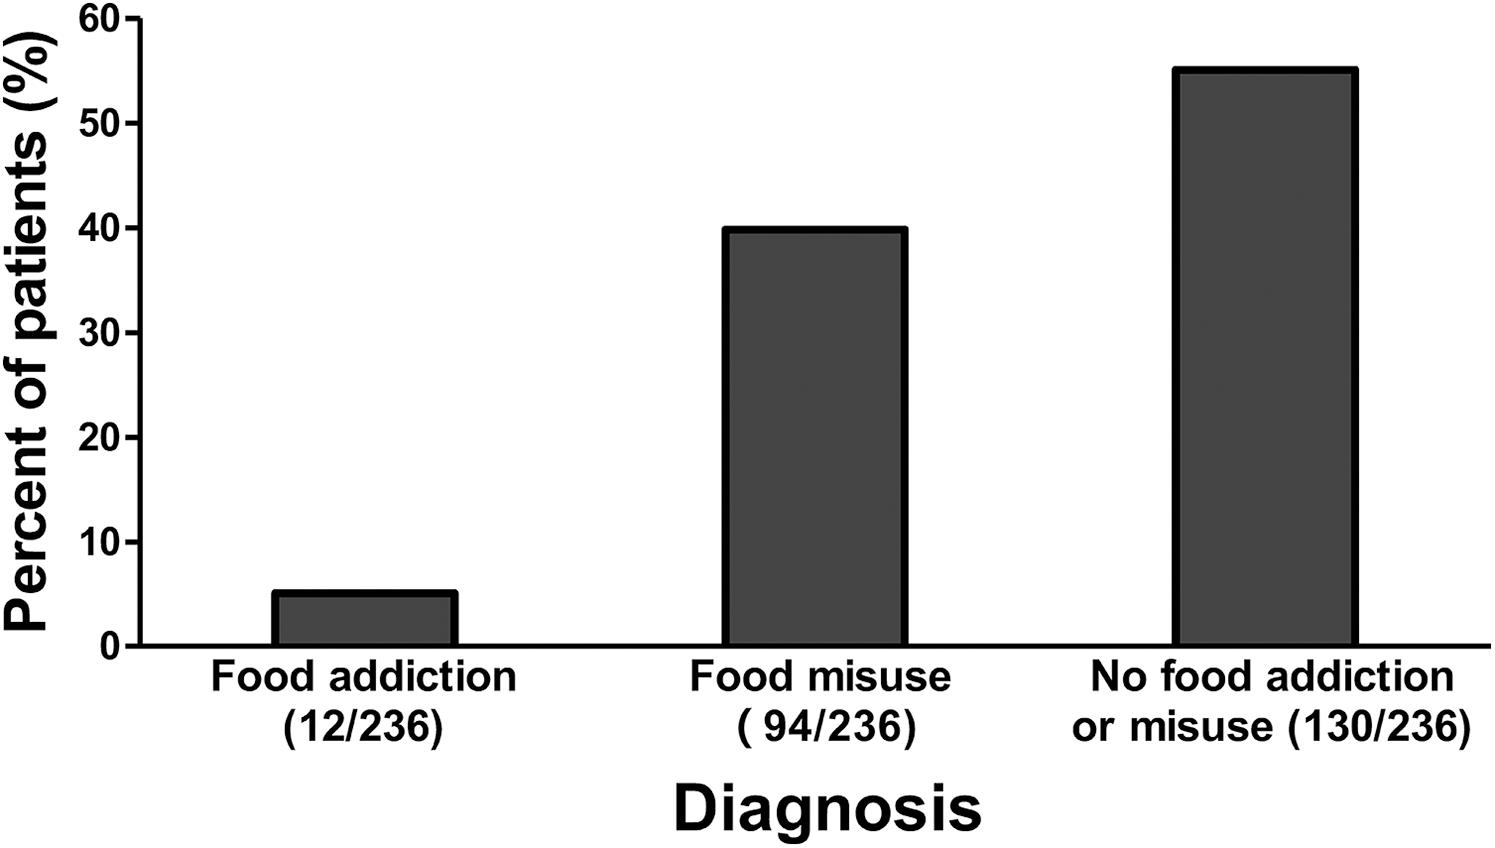 Patients with food misuse compared to patients with food addiction.